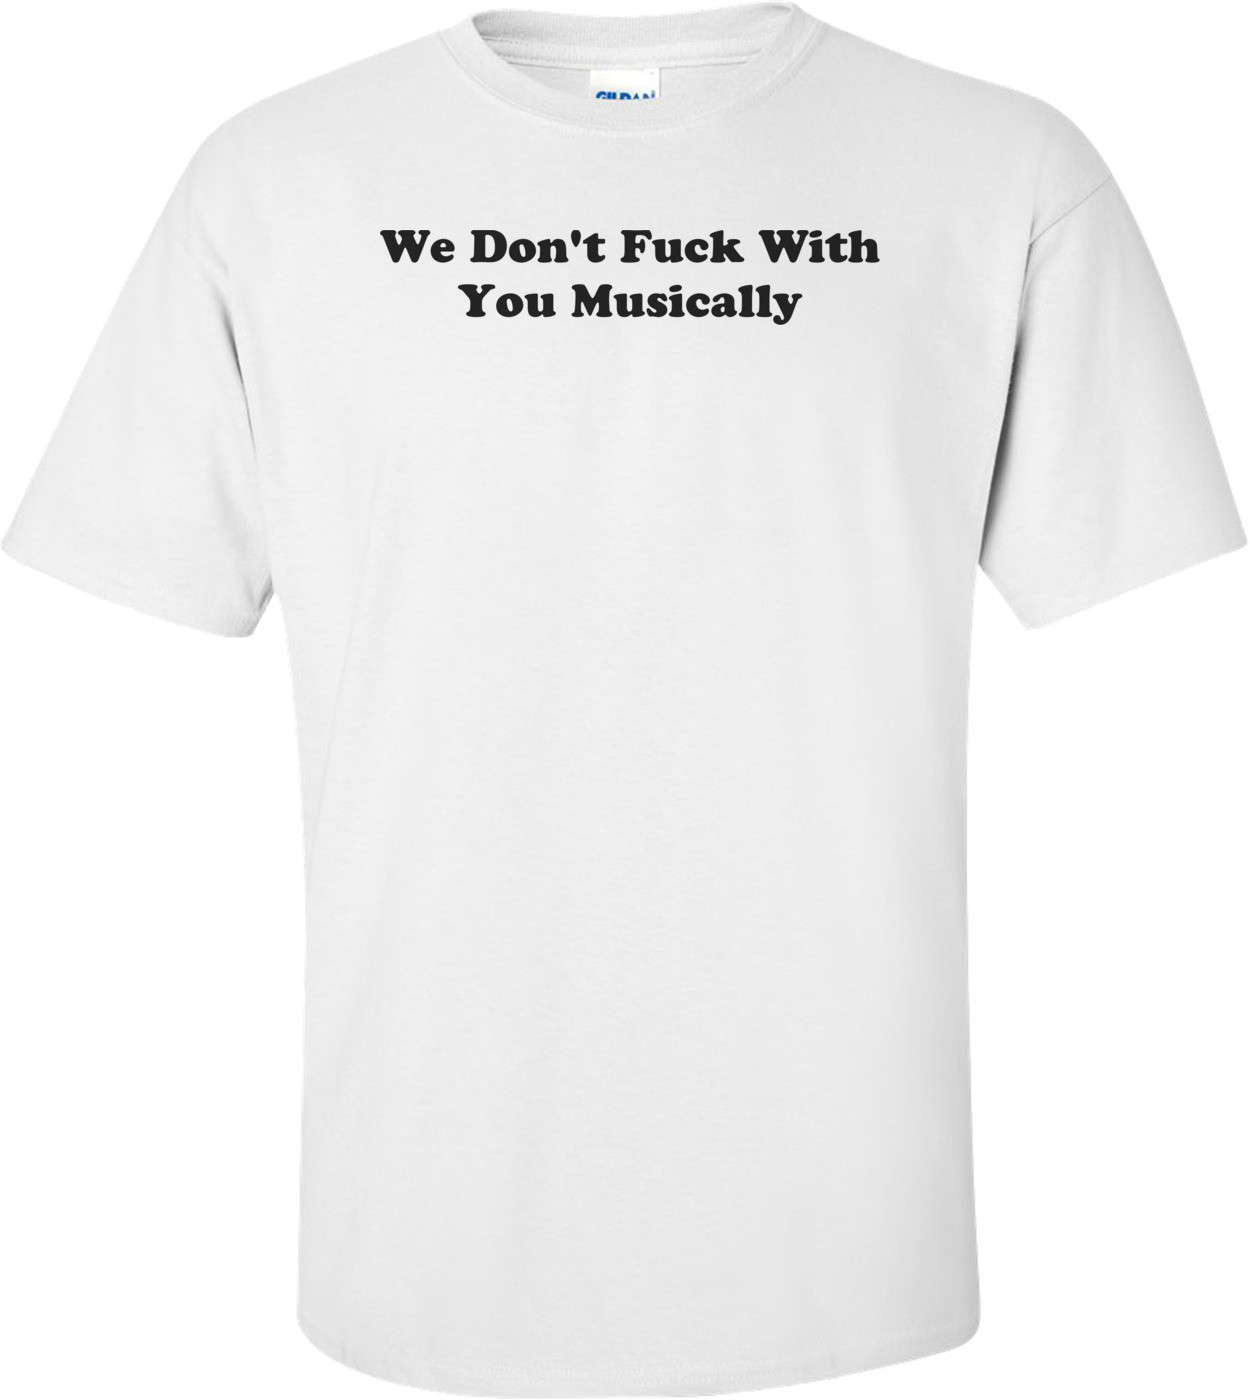 We Don't Fuck With You Musically Shirt